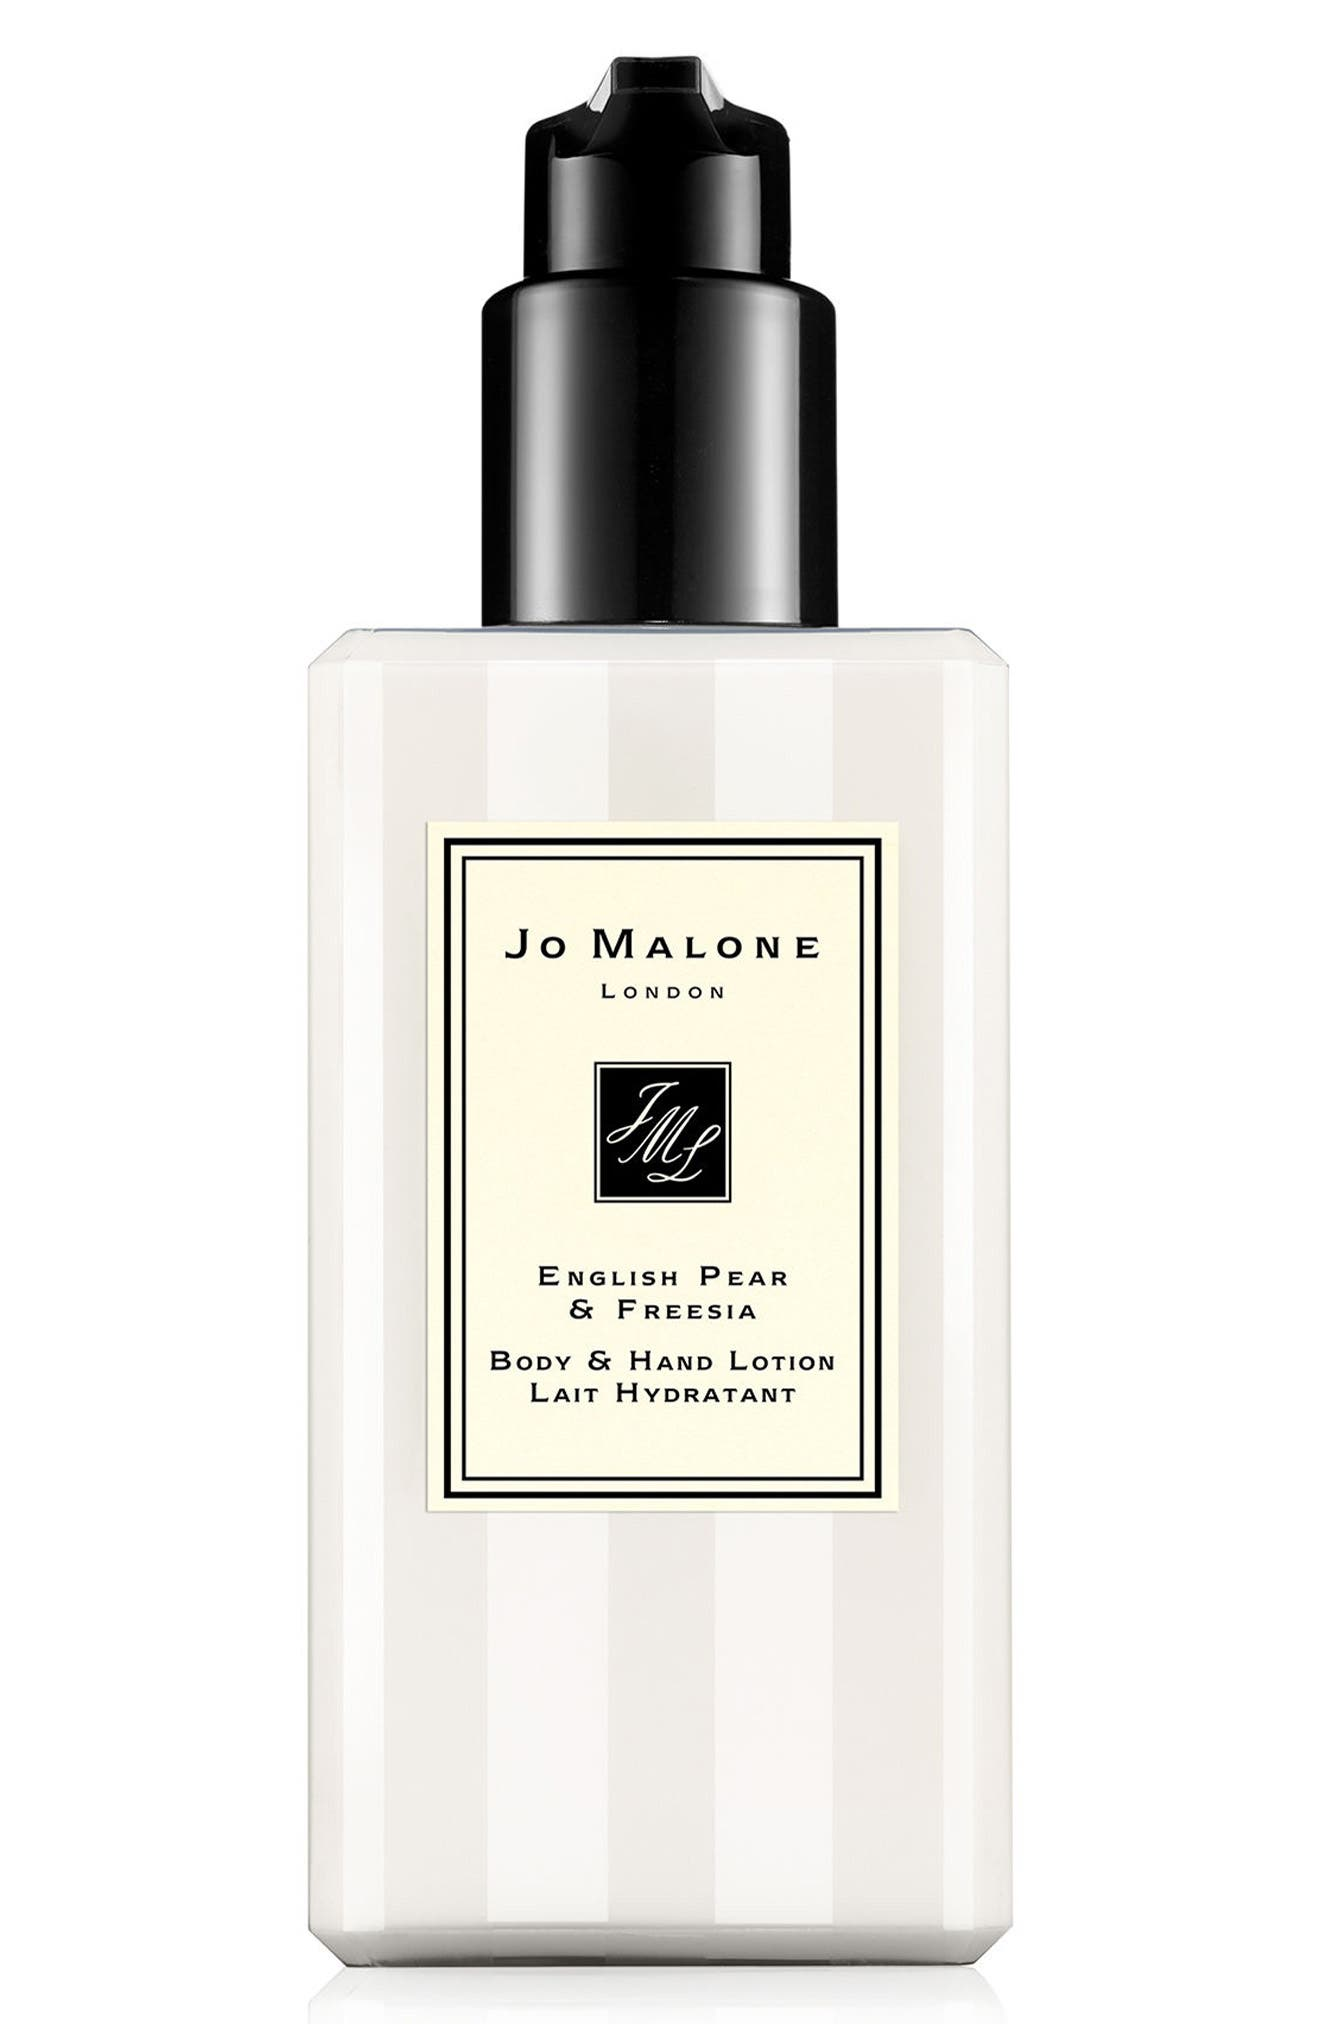 Jo Malone London™ English Pear & Freesia Body & Hand Lotion